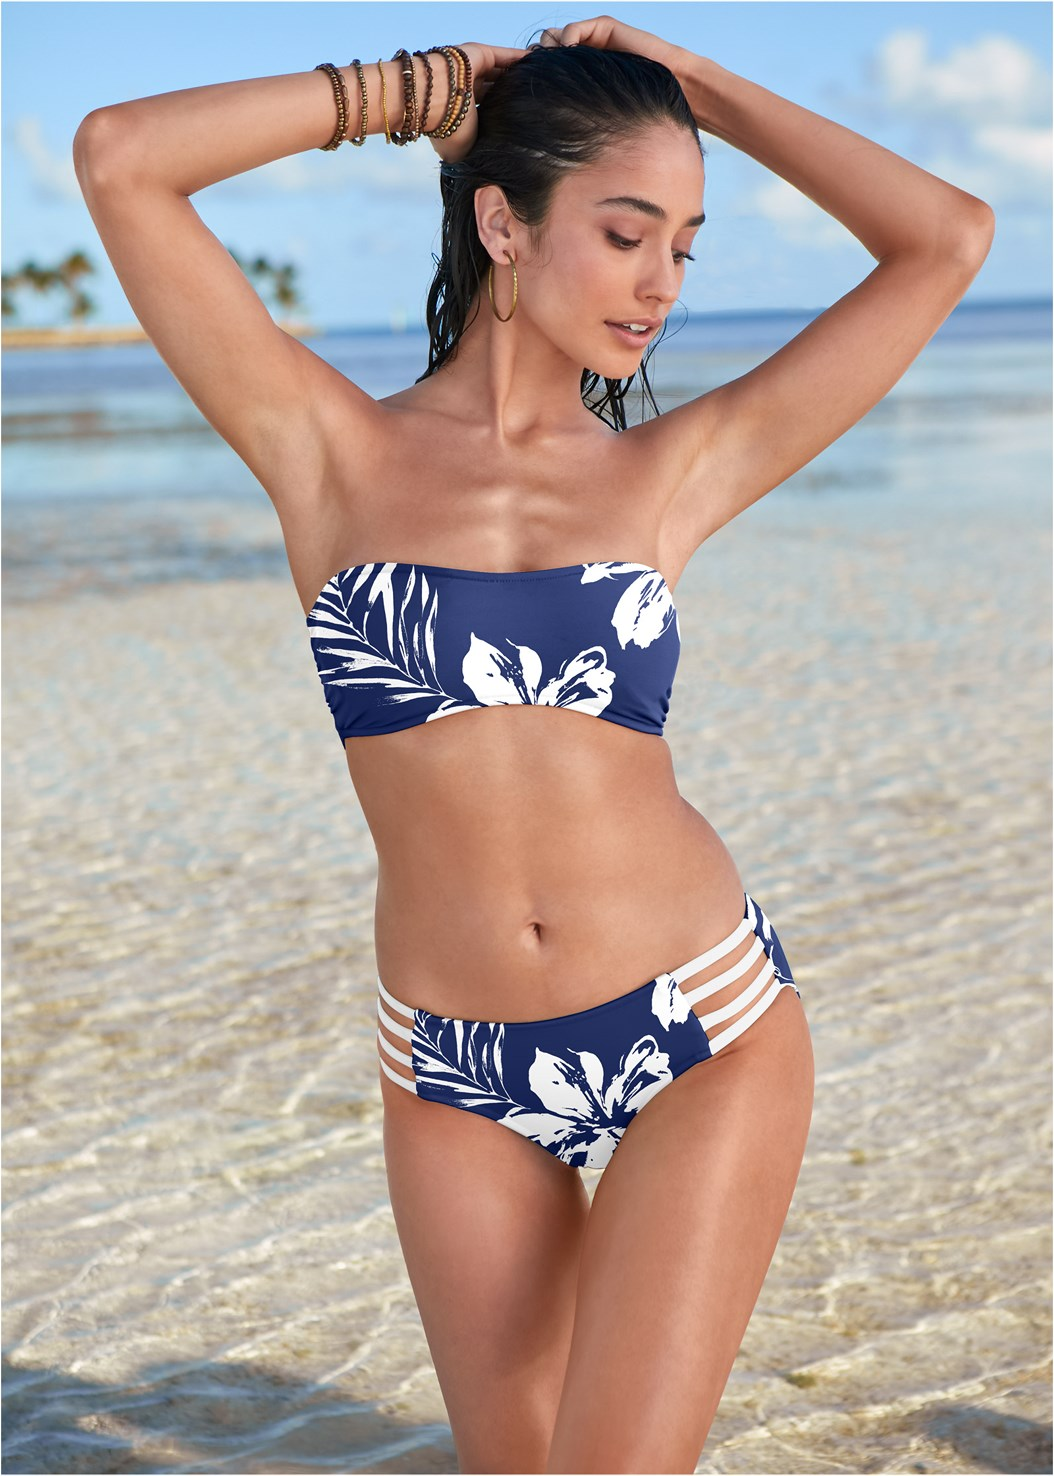 Strappy Bandeau Top,Mid Rise Strappy Bottom,Low Rise Classic Bikini Bottom ,Mid Rise Hipster Classic Bikini Bottom,Ruched High Waist Bottom,Romper Cover-Up